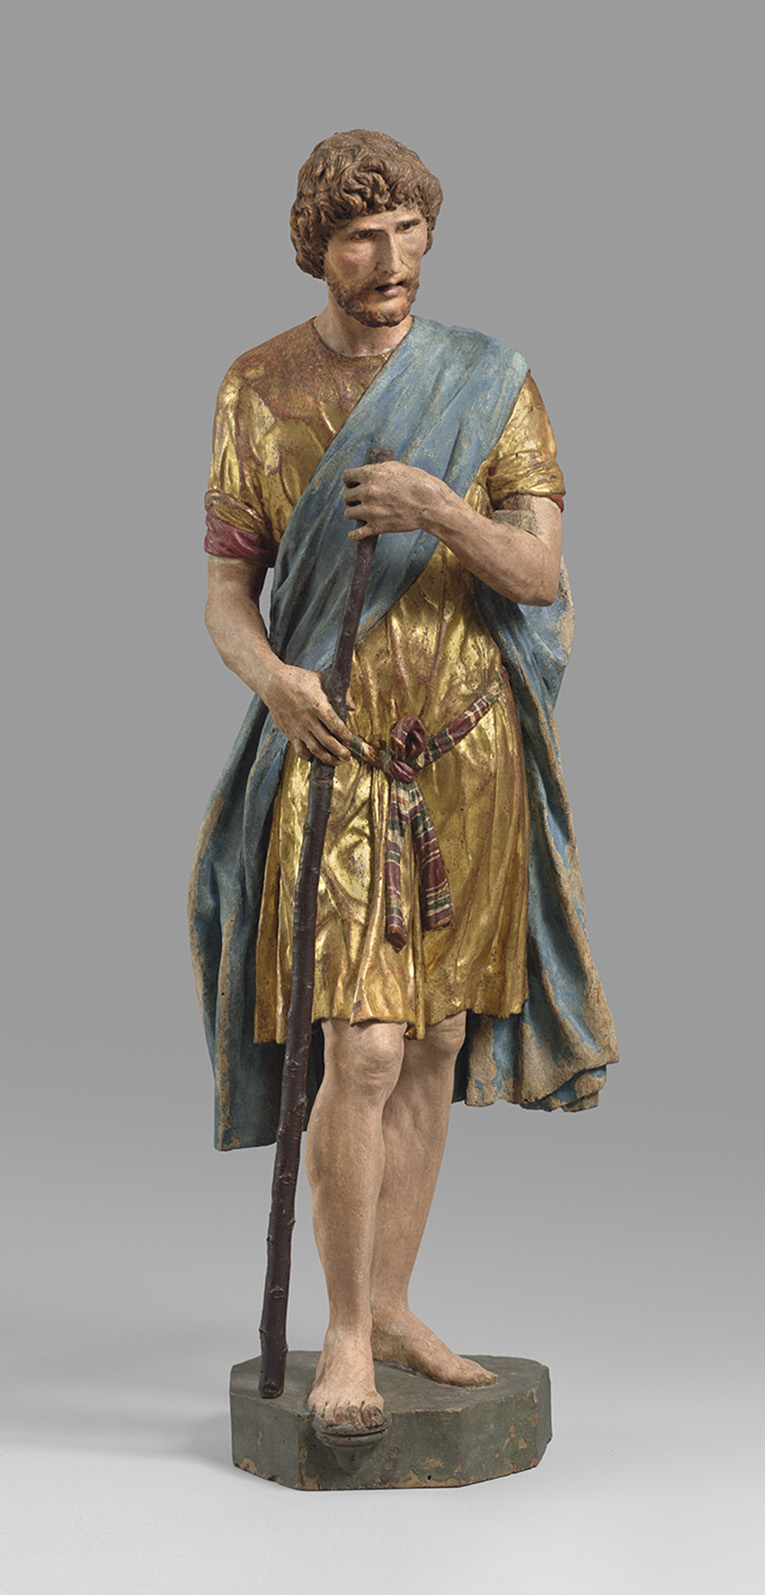 Francesco di Giorgio Martini (1439-1501), Saint Christopher, polychrome and gilt wood, 1488-1490, h. 164 cm/64.6 in.© Paris, Louvre, Dist.